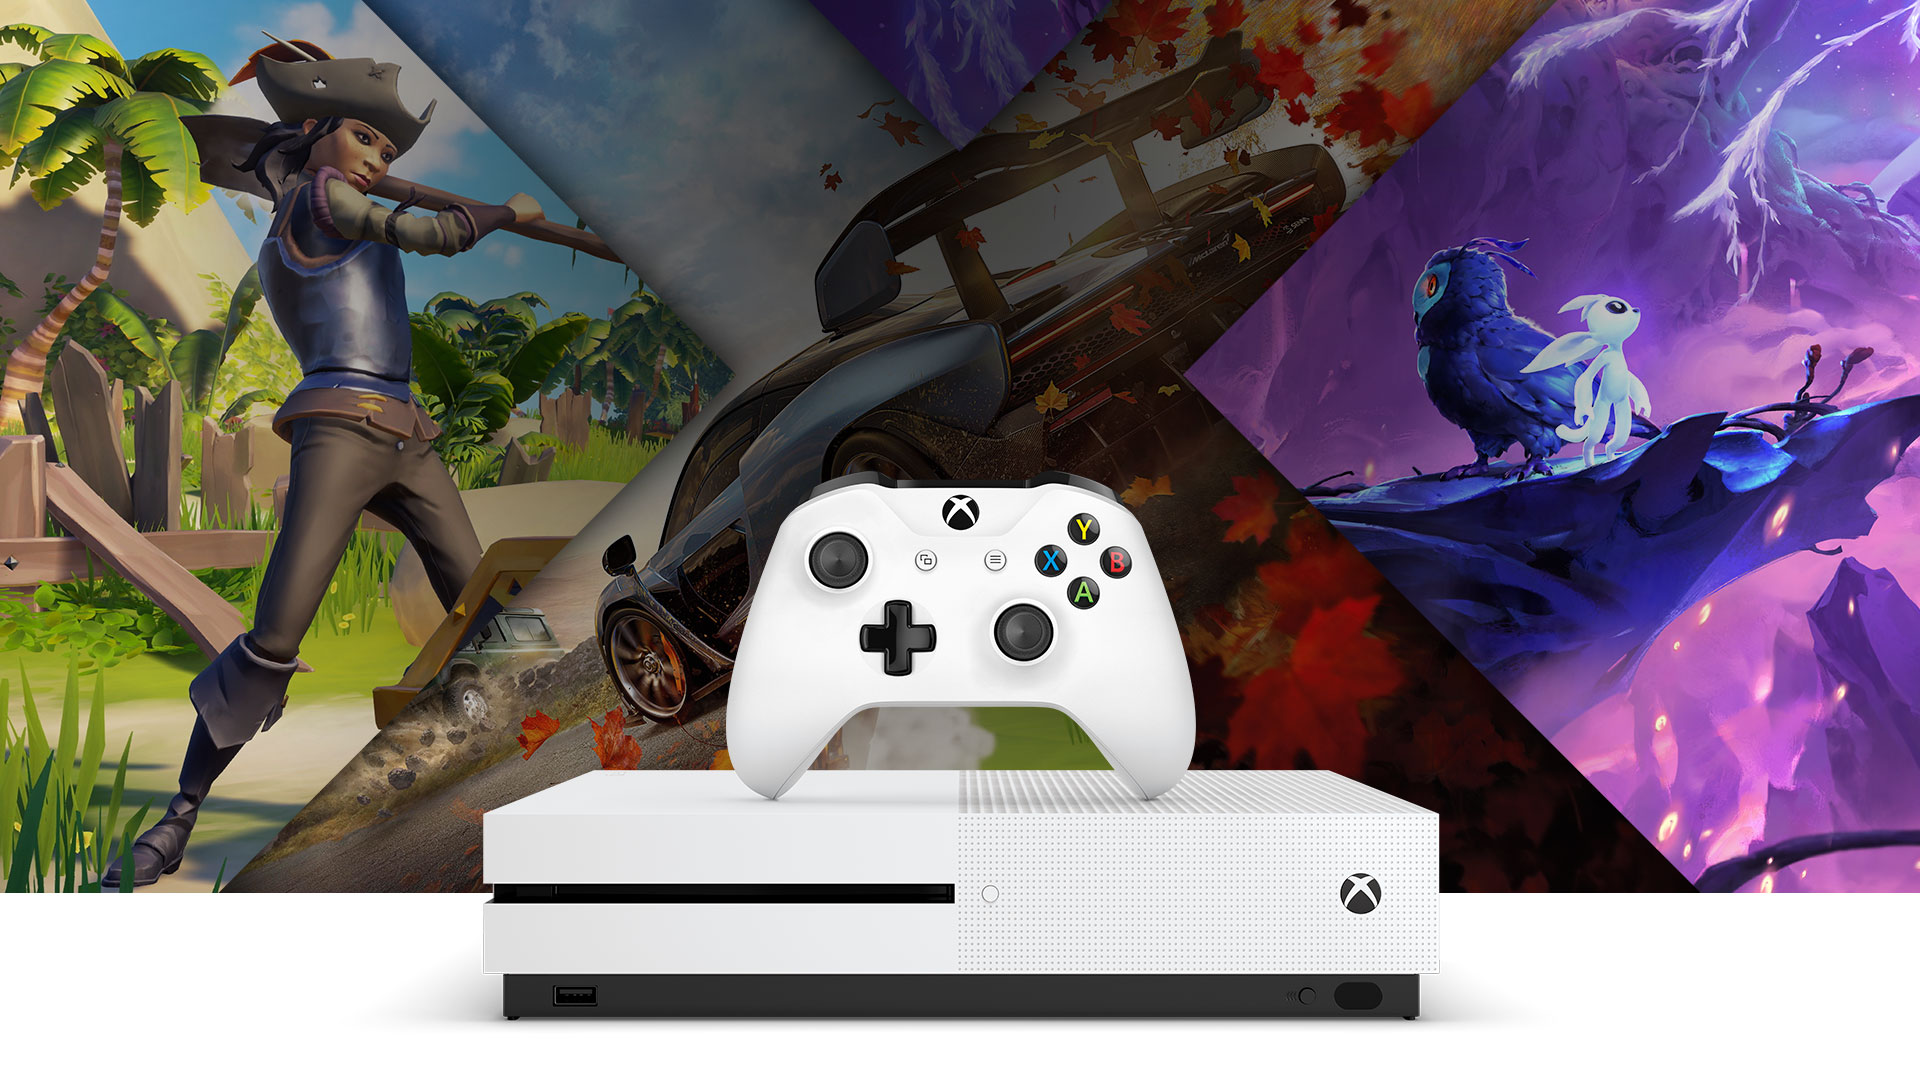 Vista frontal de la consola Xbox One S y el Mando inalámbrico blanco rodeados de las ilustraciones de Sea of Thieves, Forza Horizon 4 y Ori and the Will of Wisps